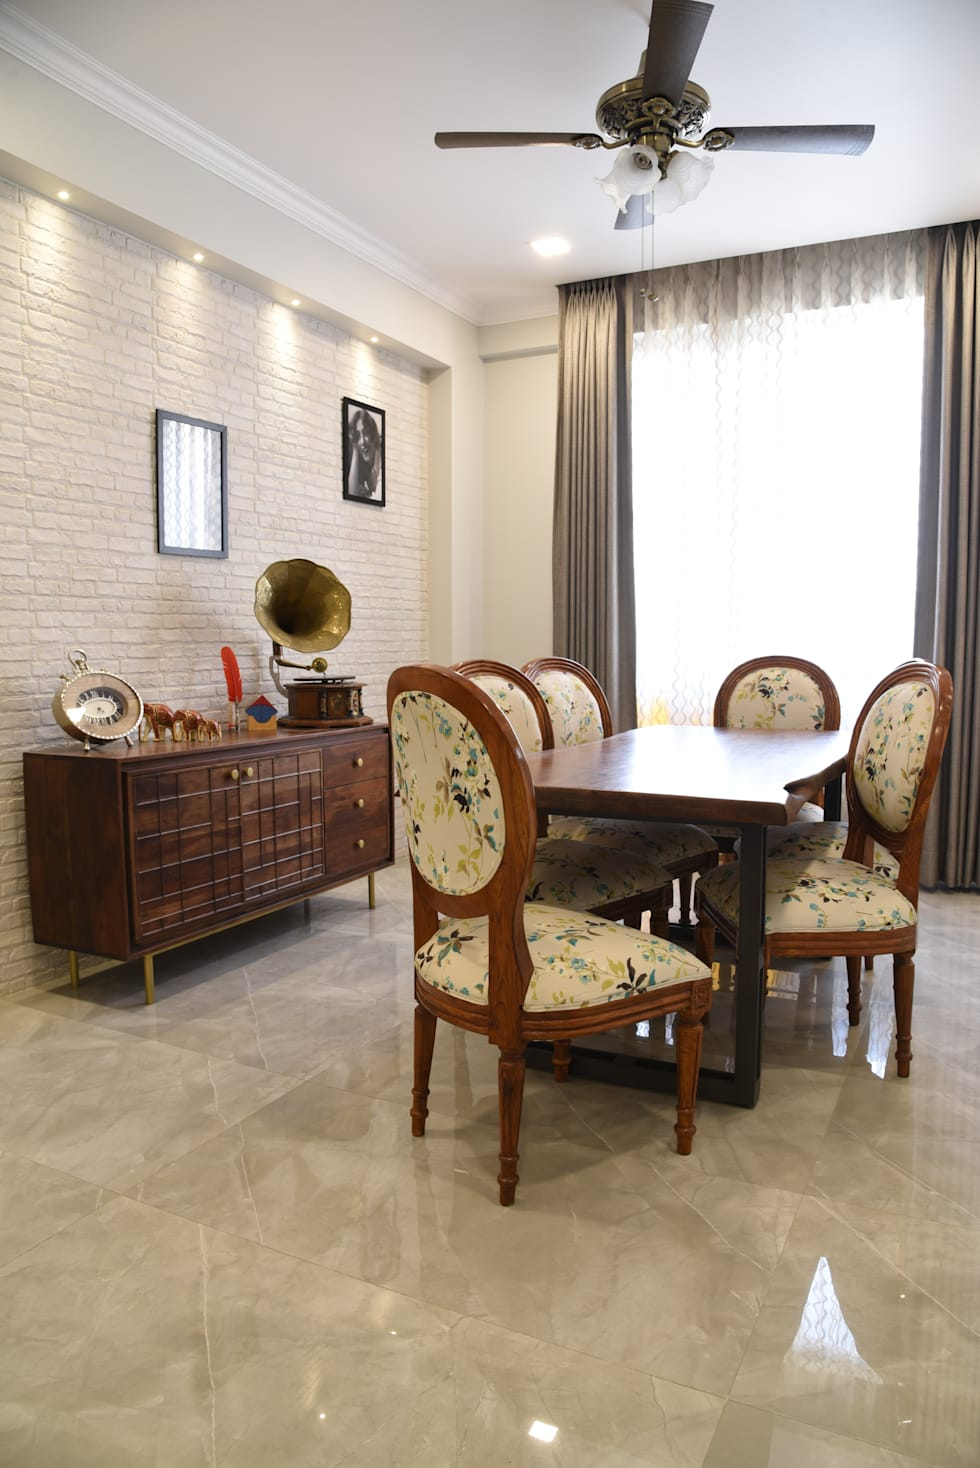 Dining room- Apartment on Golf course extension road, Gurugram:  Dining room by The Workroom